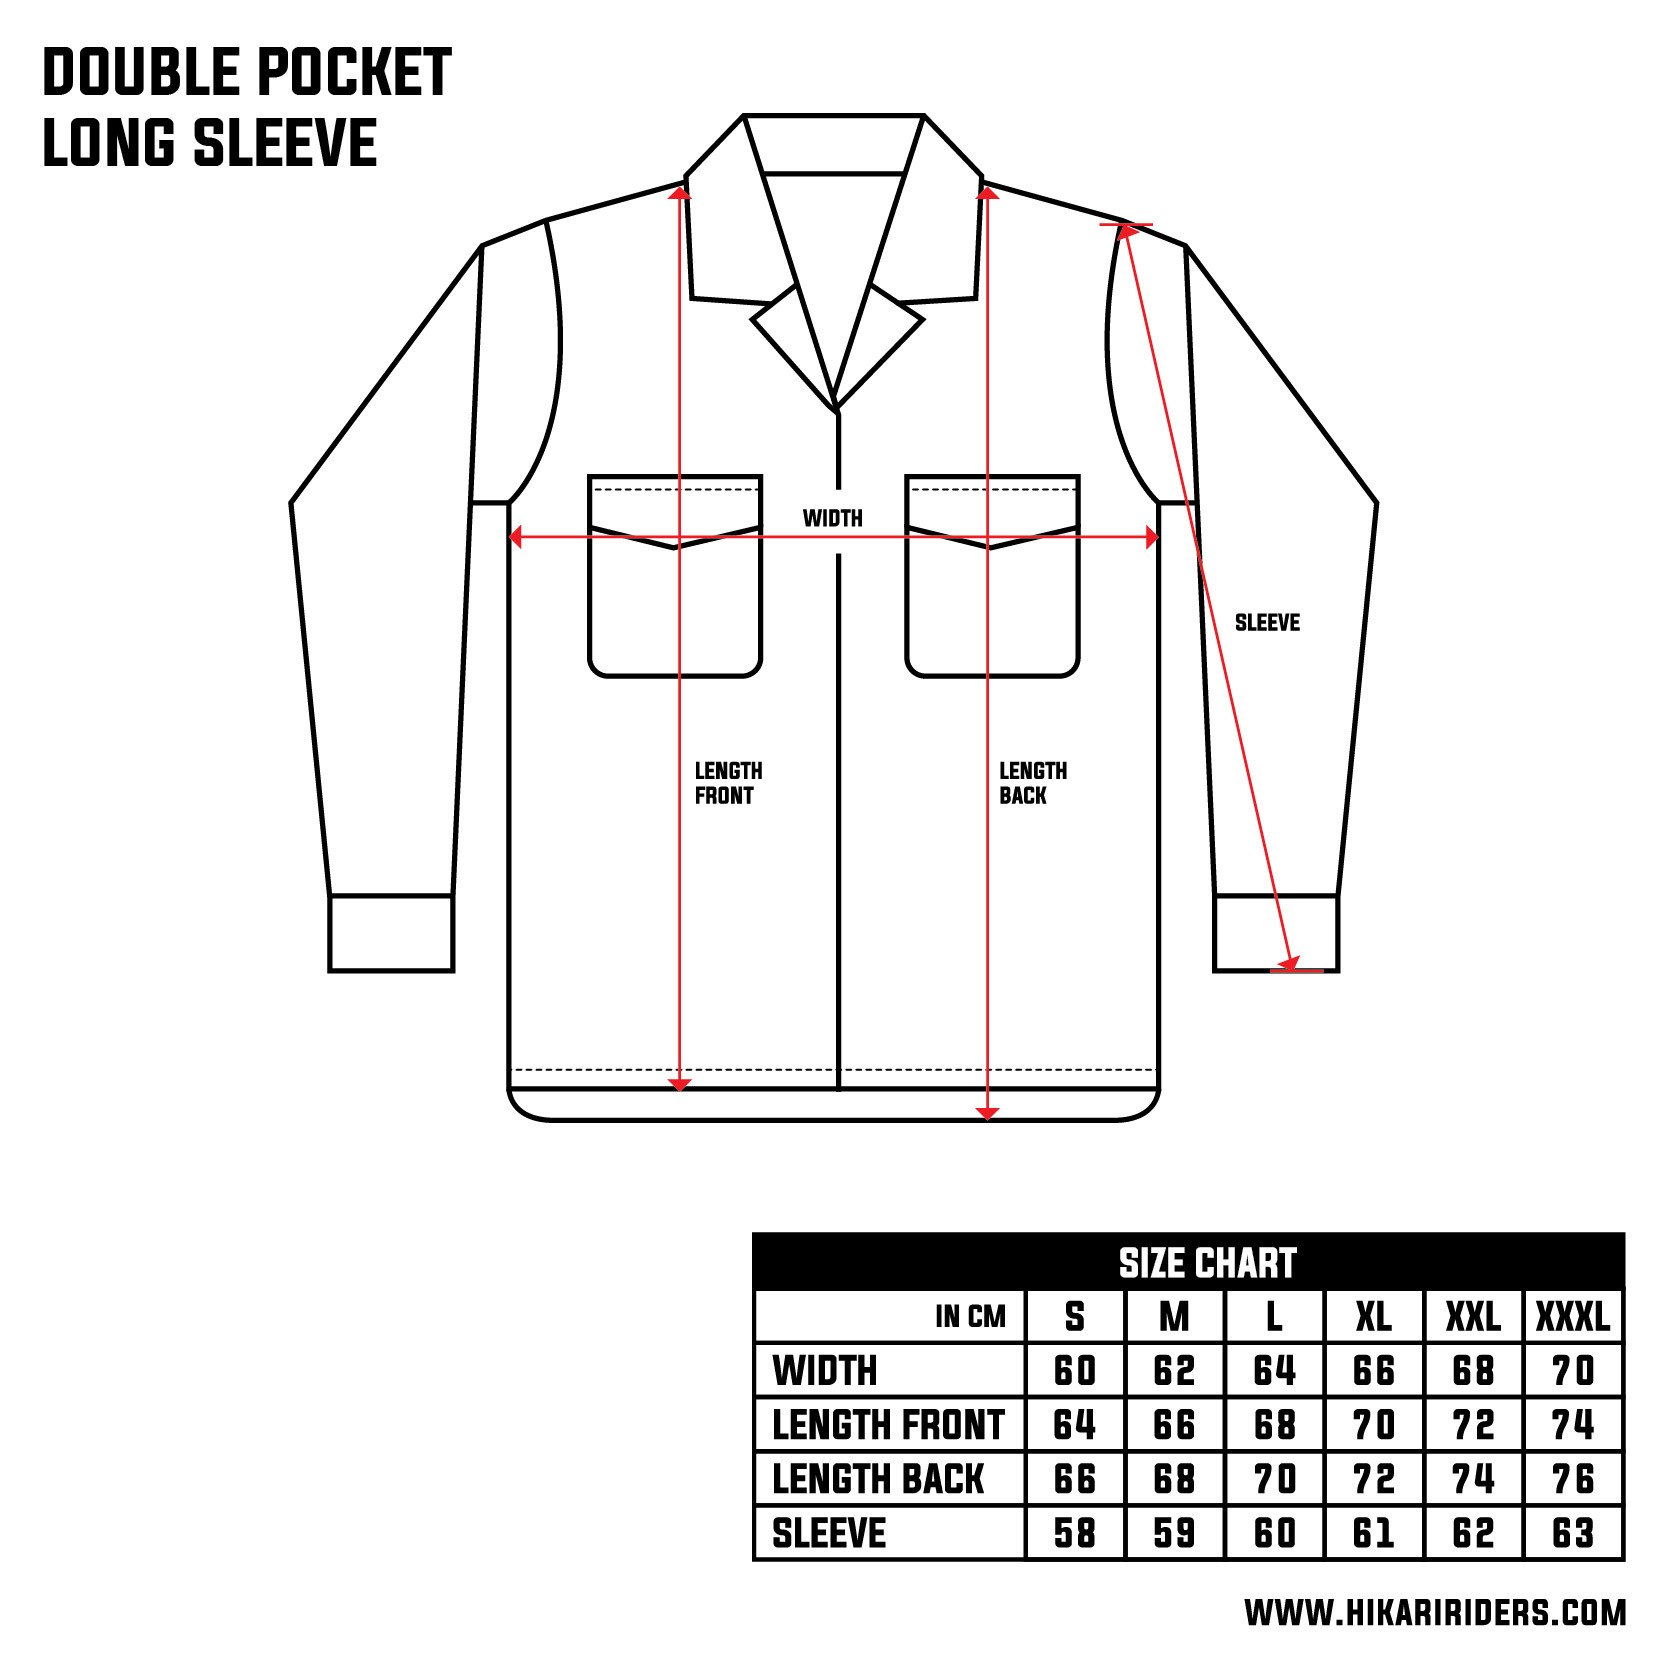 Double Pocket Long Sleeve.jpg